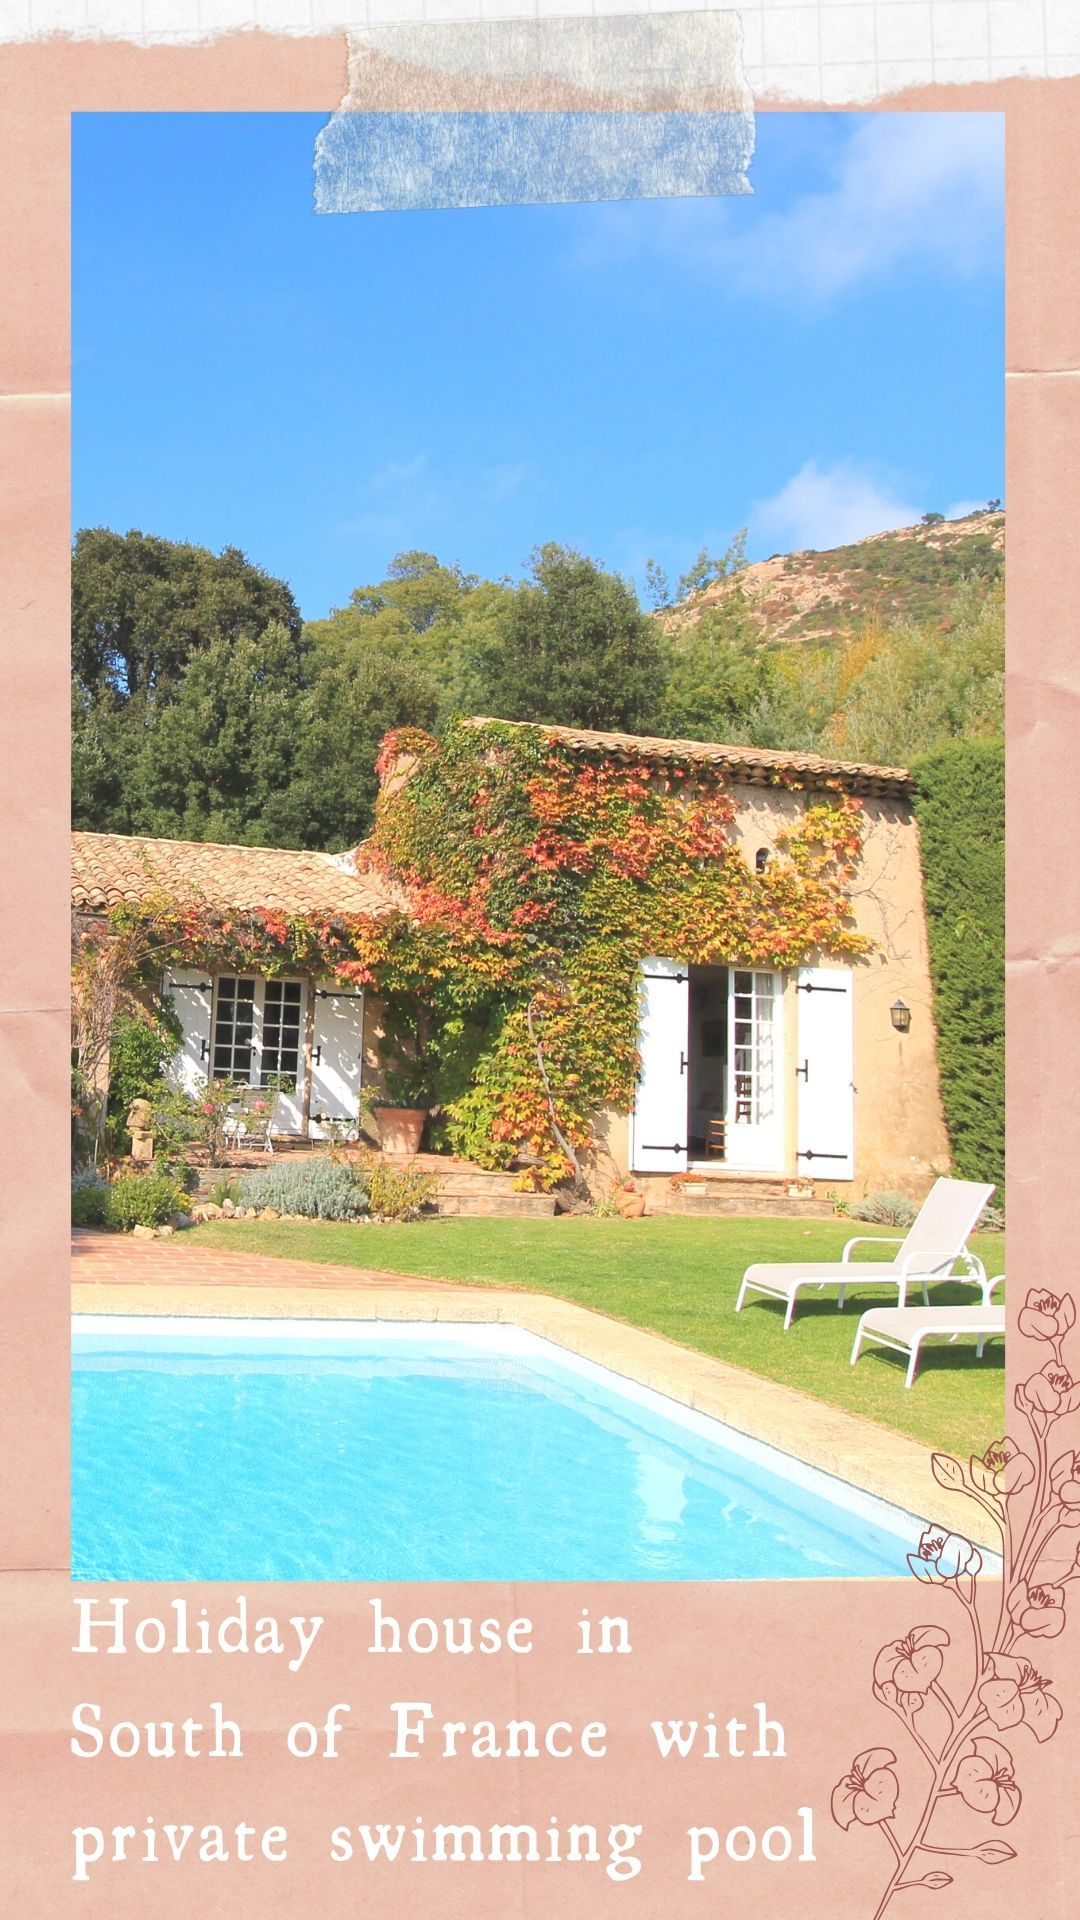 Stay in this villa with private swimming pool in the centre of nature 🌺 -   18 holiday Home france ideas